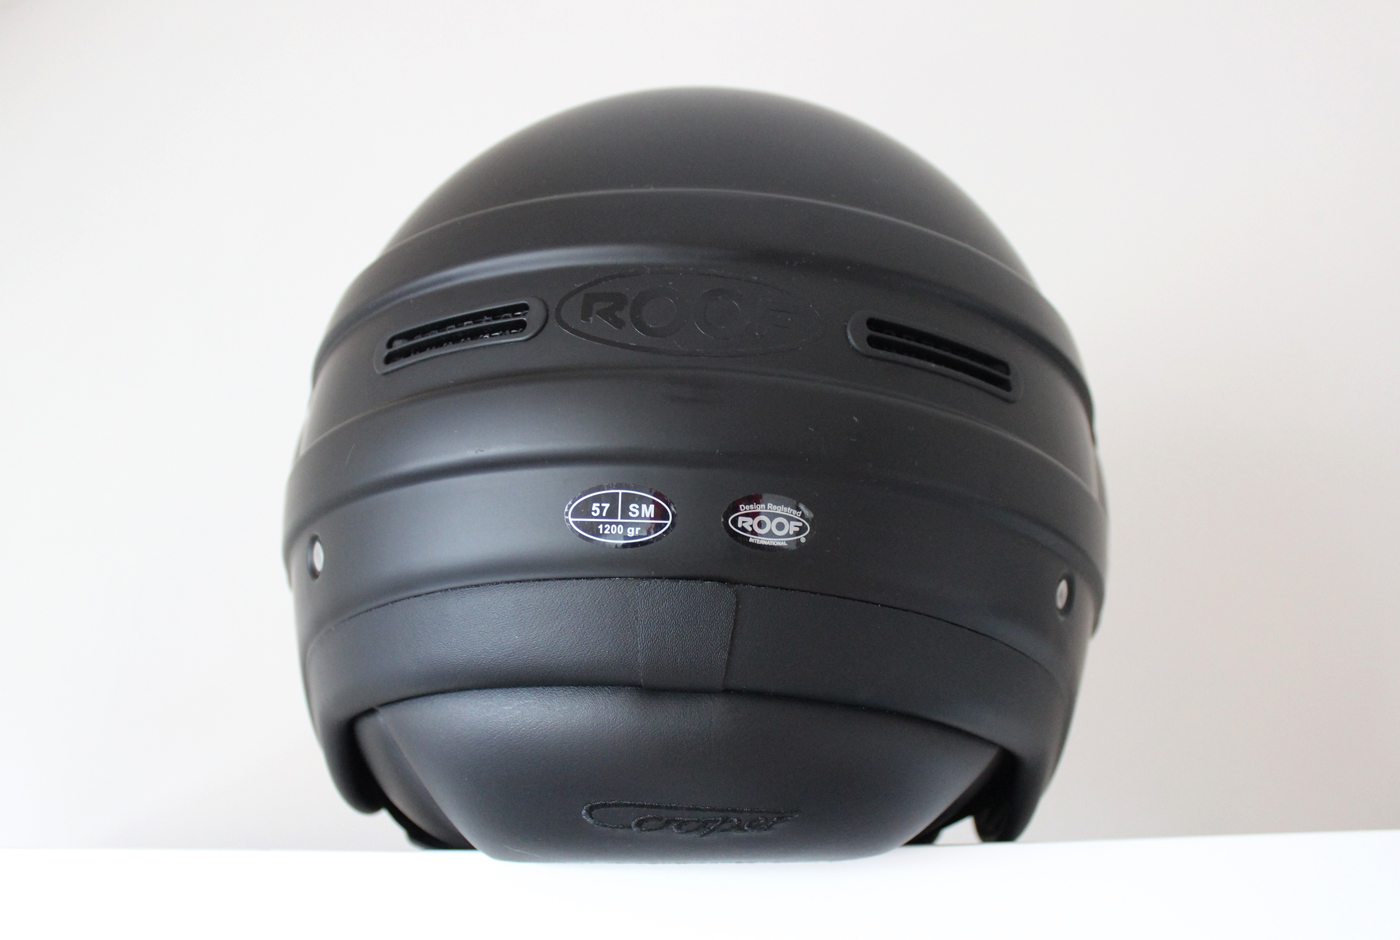 Design du casque Roof RO35 Cooper